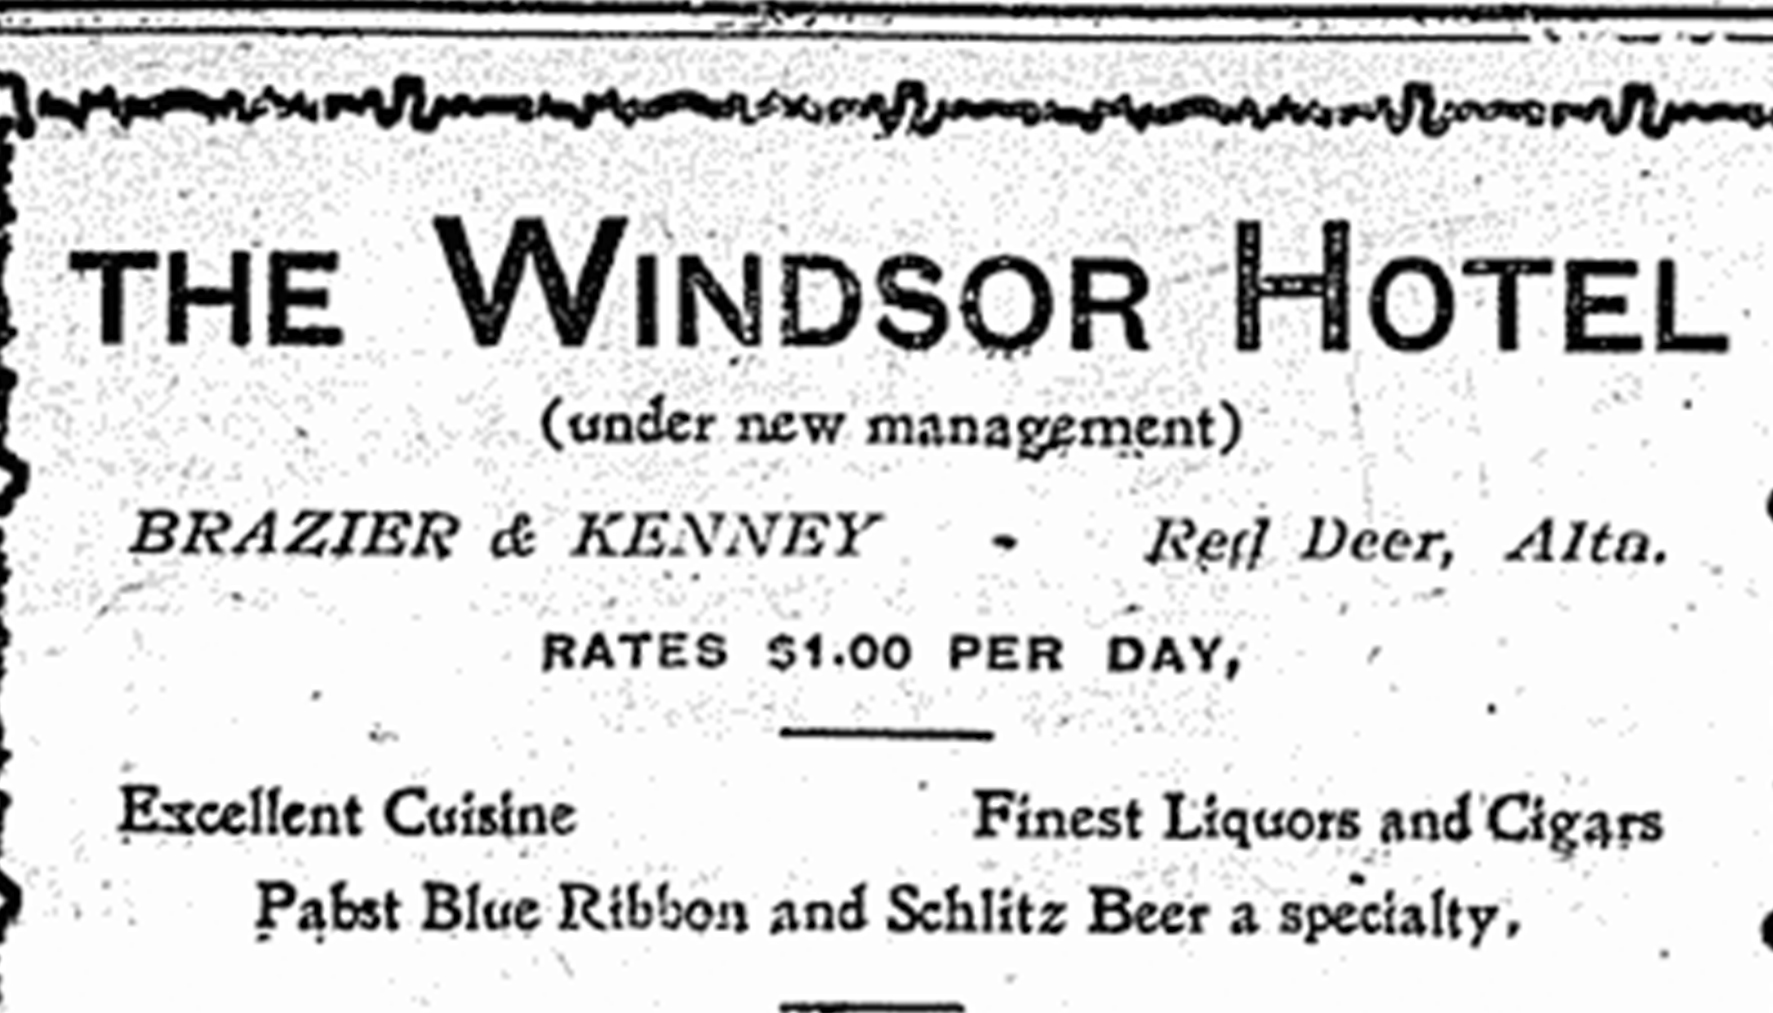 Advertisement for the Windsor Hotel in the Red Deer News, May 22, 1907